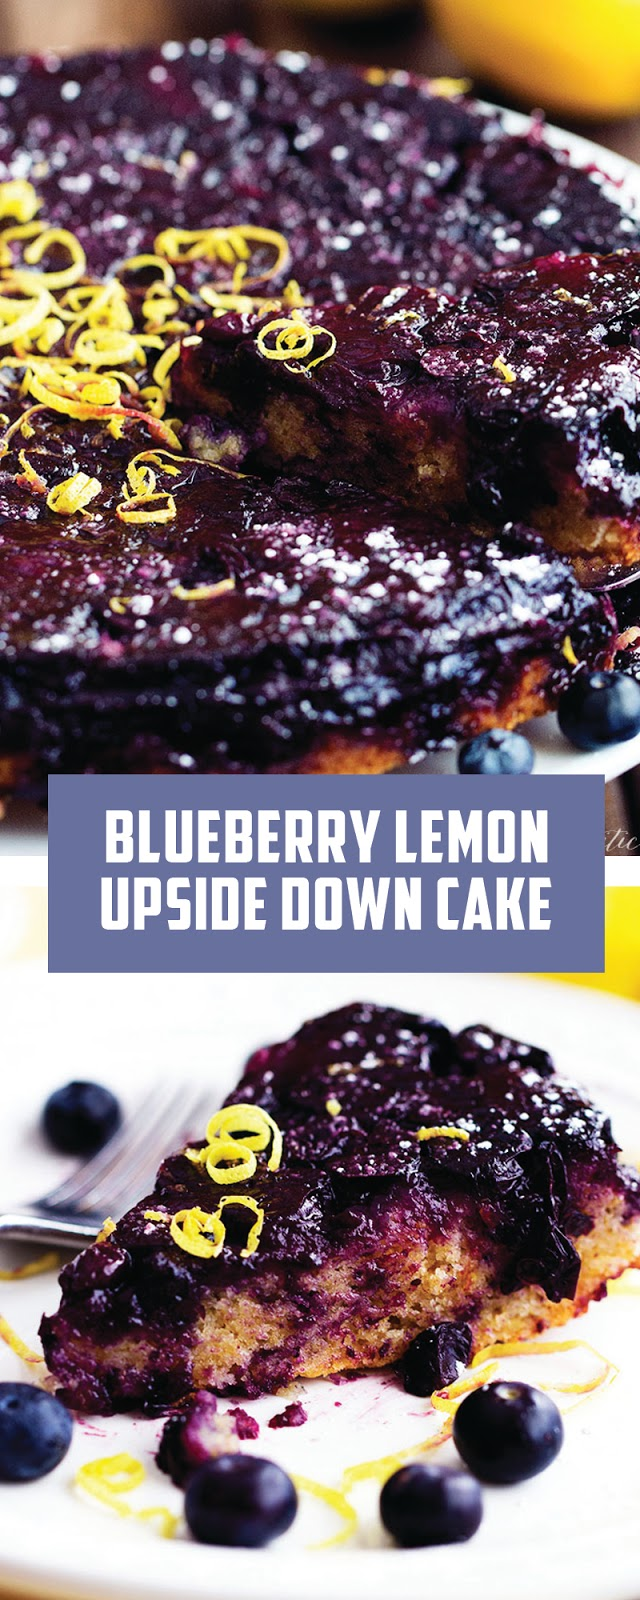 BLUEBERRY LEMON UPSIDE DOWN CAKE